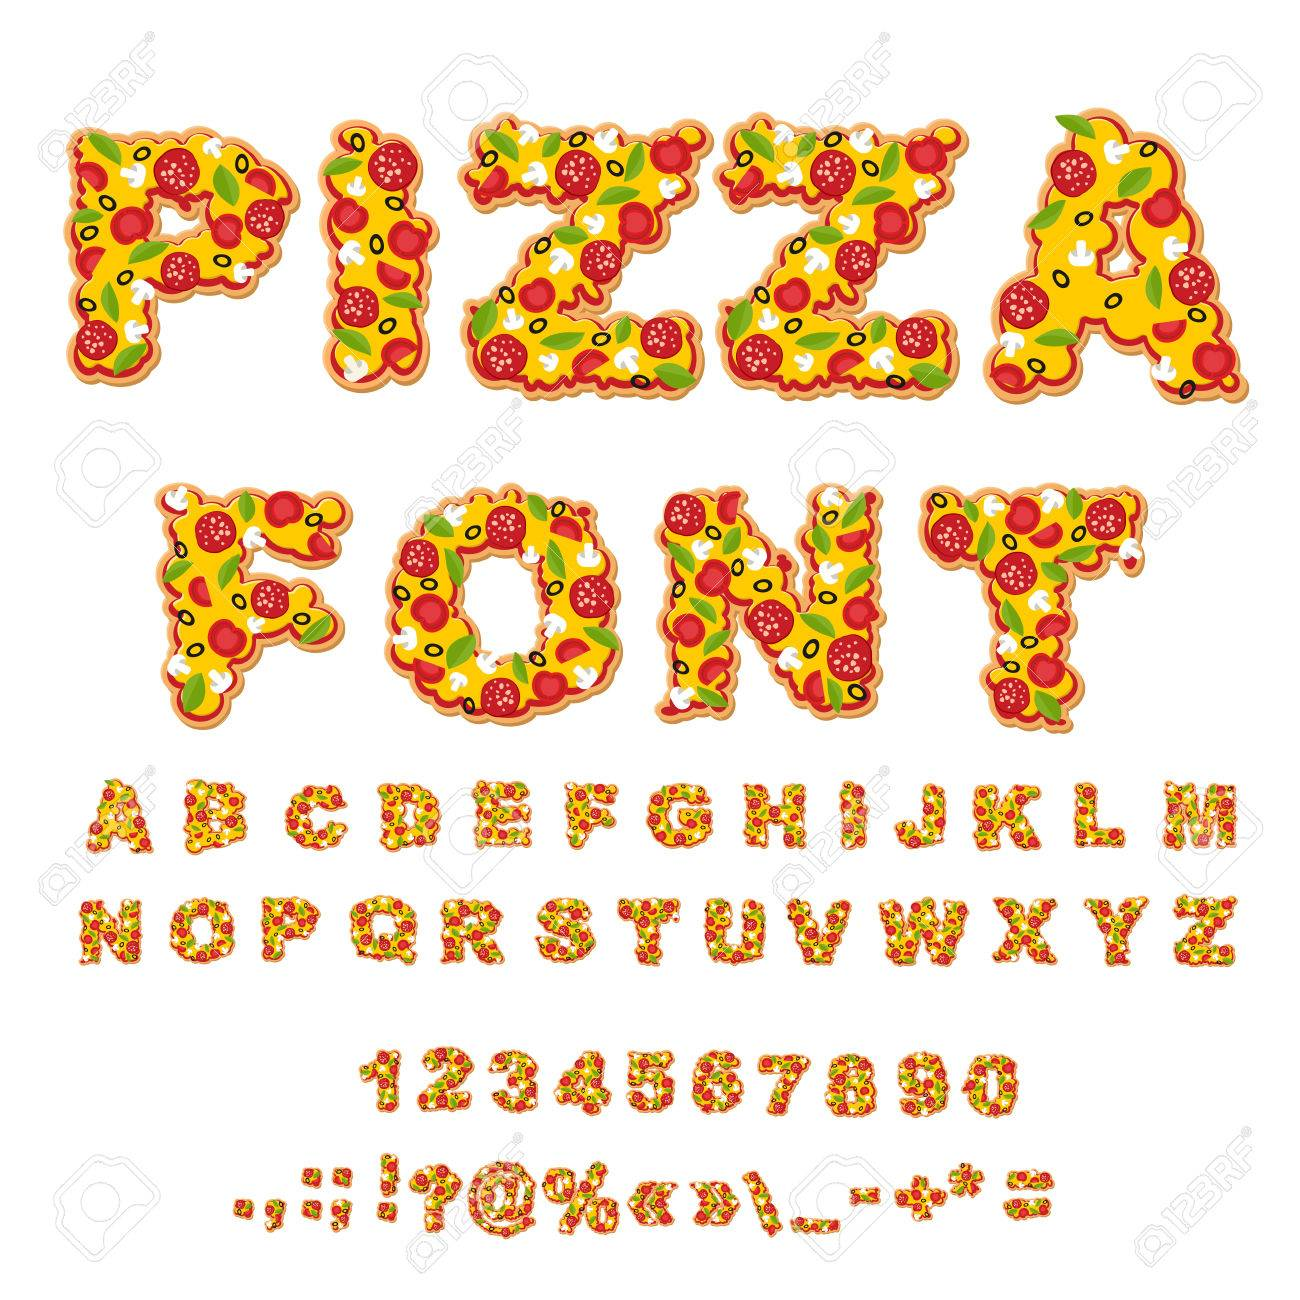 Pizza font. Letters dough. Food Alphabet. Fast food ABC. Italian food. fresh slice of pizza. numbers and punctuation marks. Tomatoes and mushrooms. Greens and sausage. Cheese and olives - 58538002